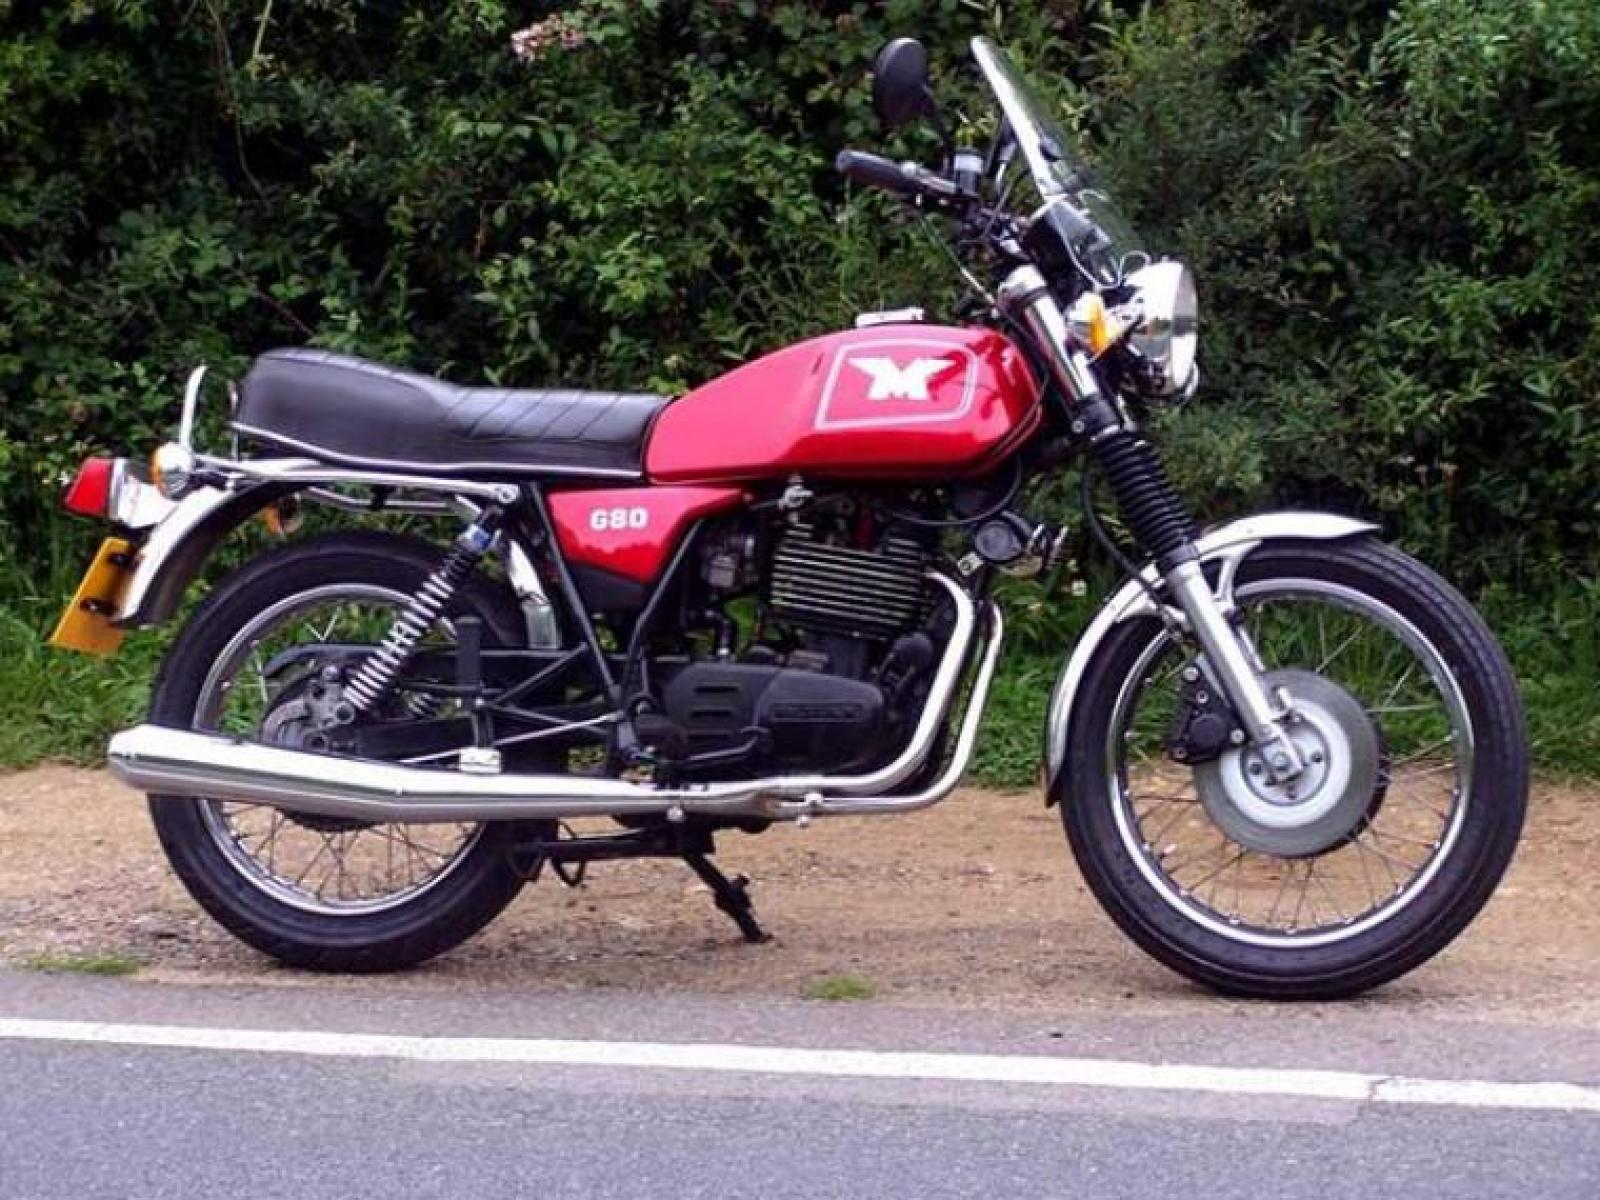 Matchless G 80 E 1989 images #104099